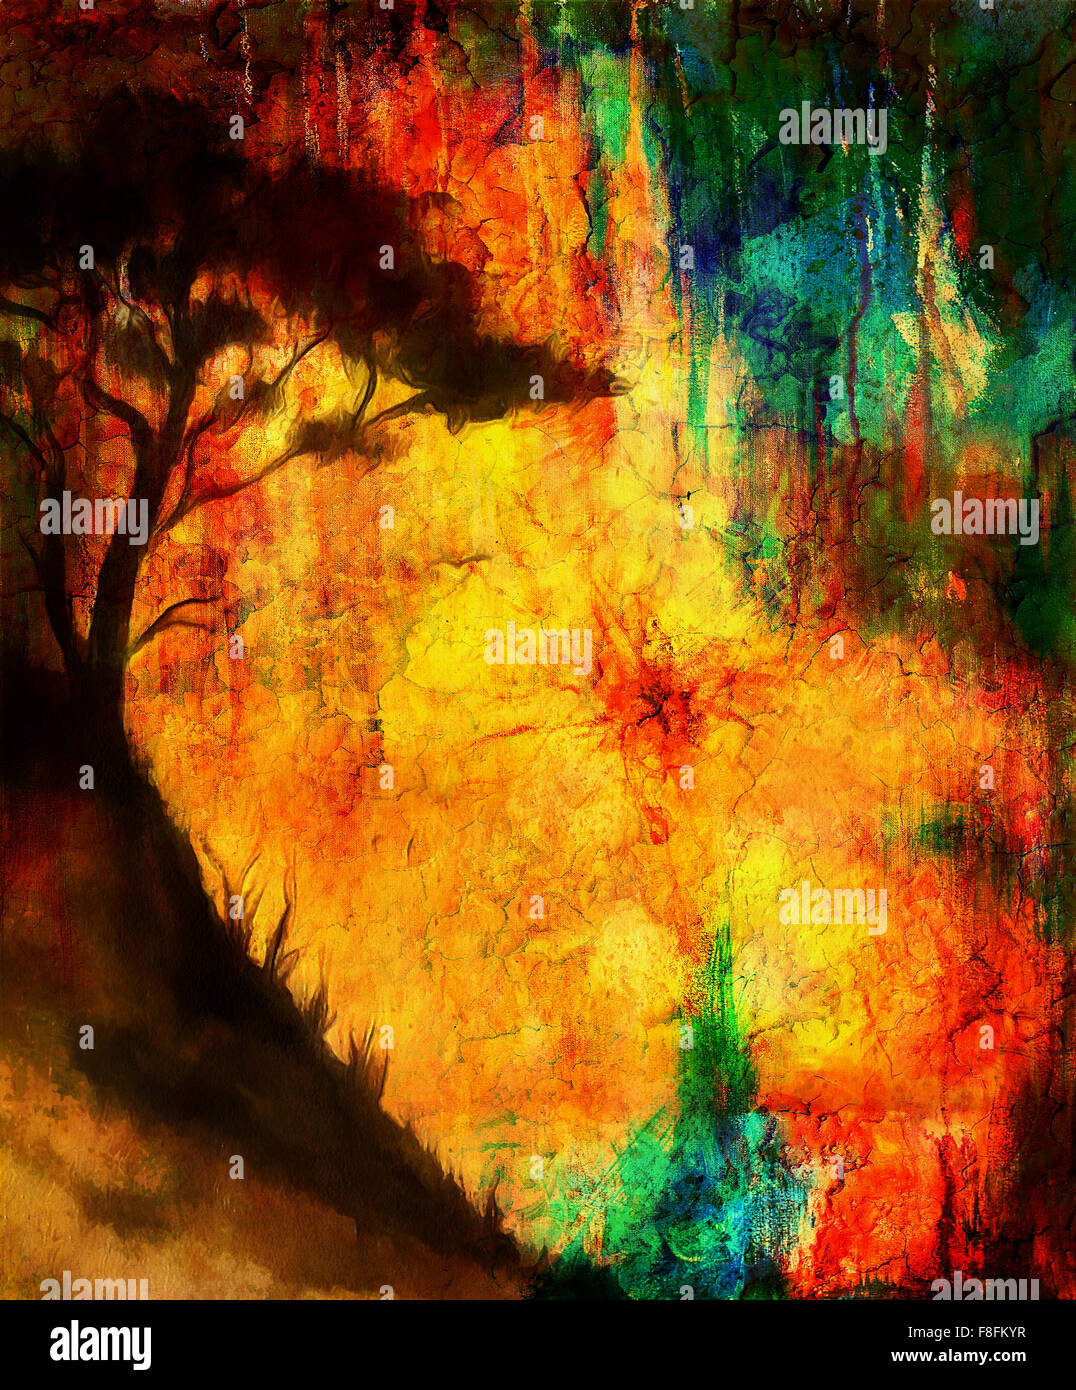 Painting Sunset And Tree Wallpaper Landscape Color Collage Abstract Grunge Background With Spots Red Orange Yellow Co